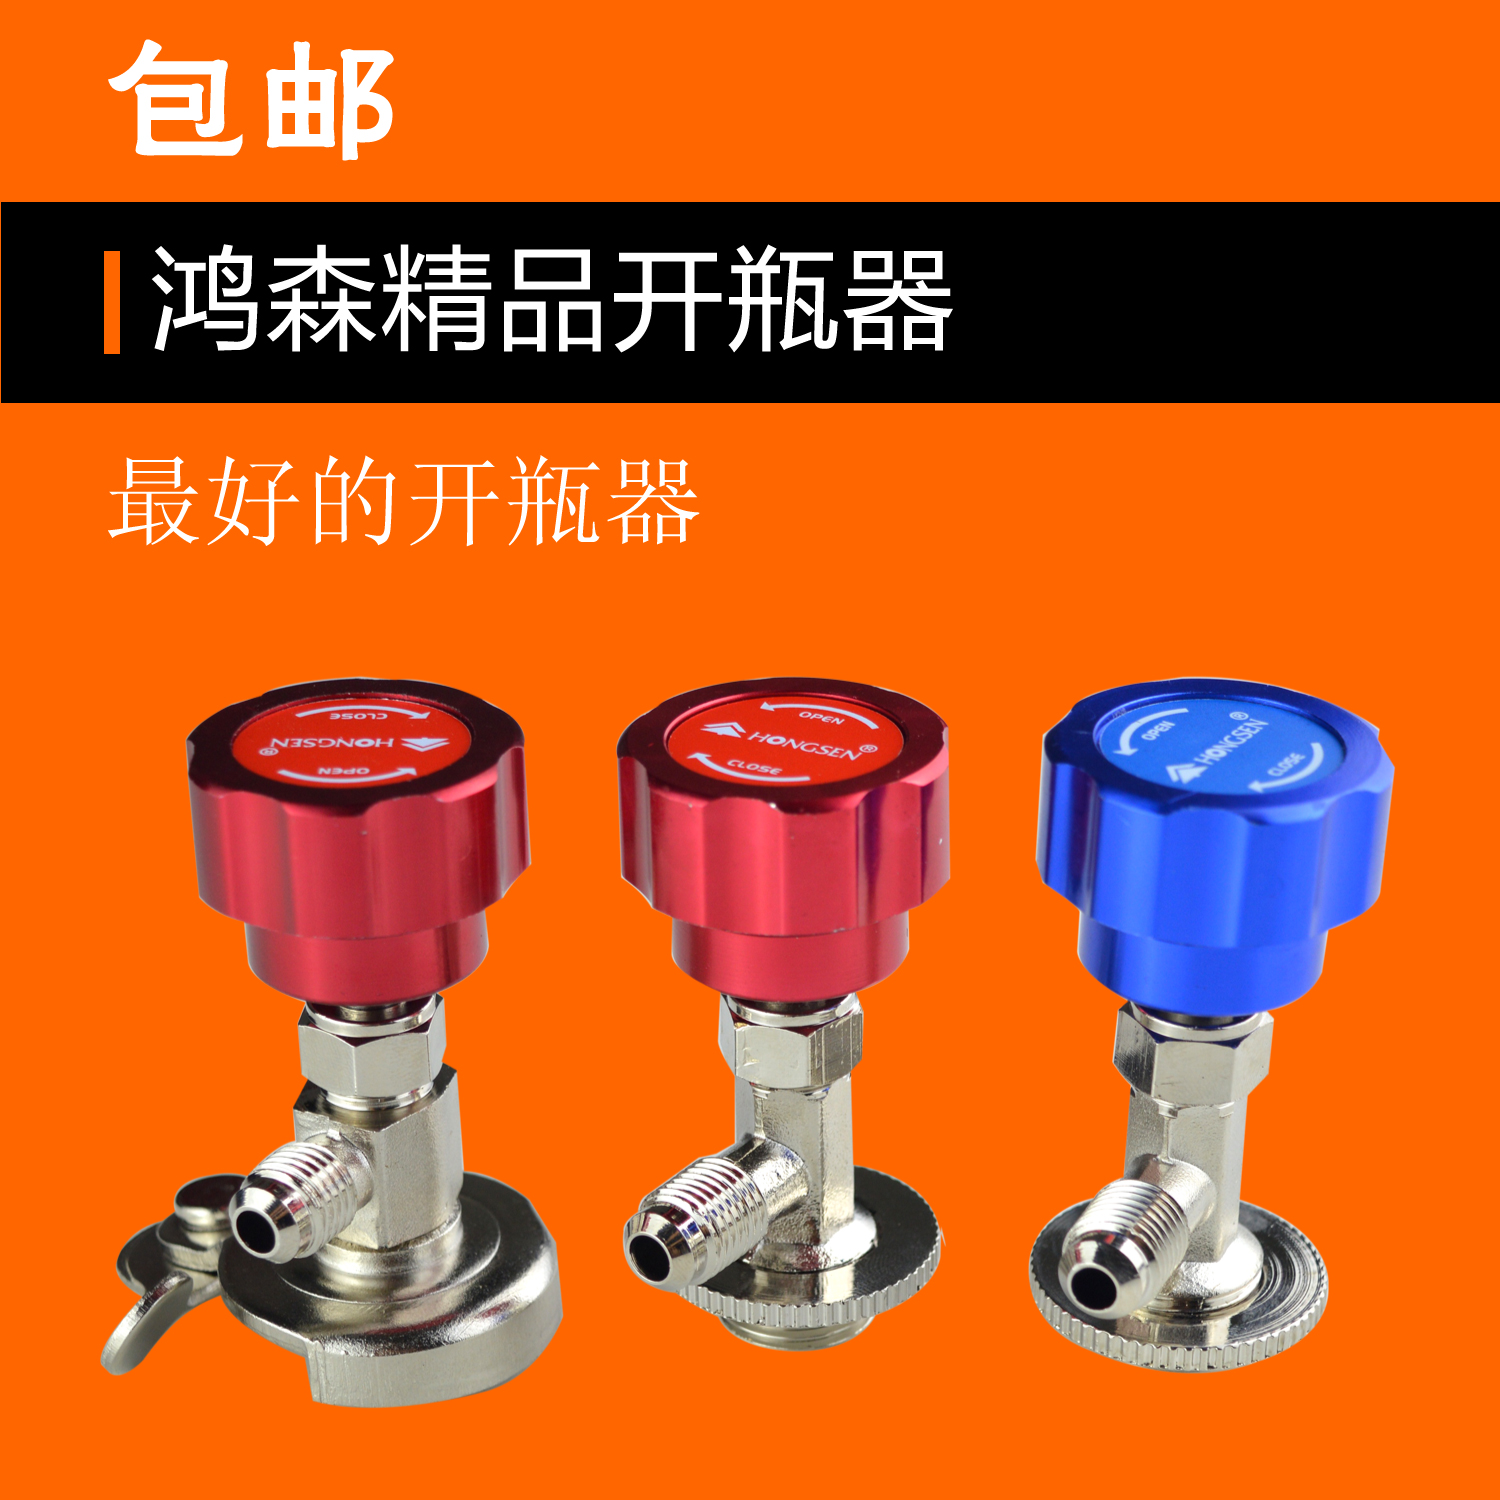 R22r134a automobile refrigerant bottle opener, snow type refrigerant opening valve, air conditioner and fluorine tool